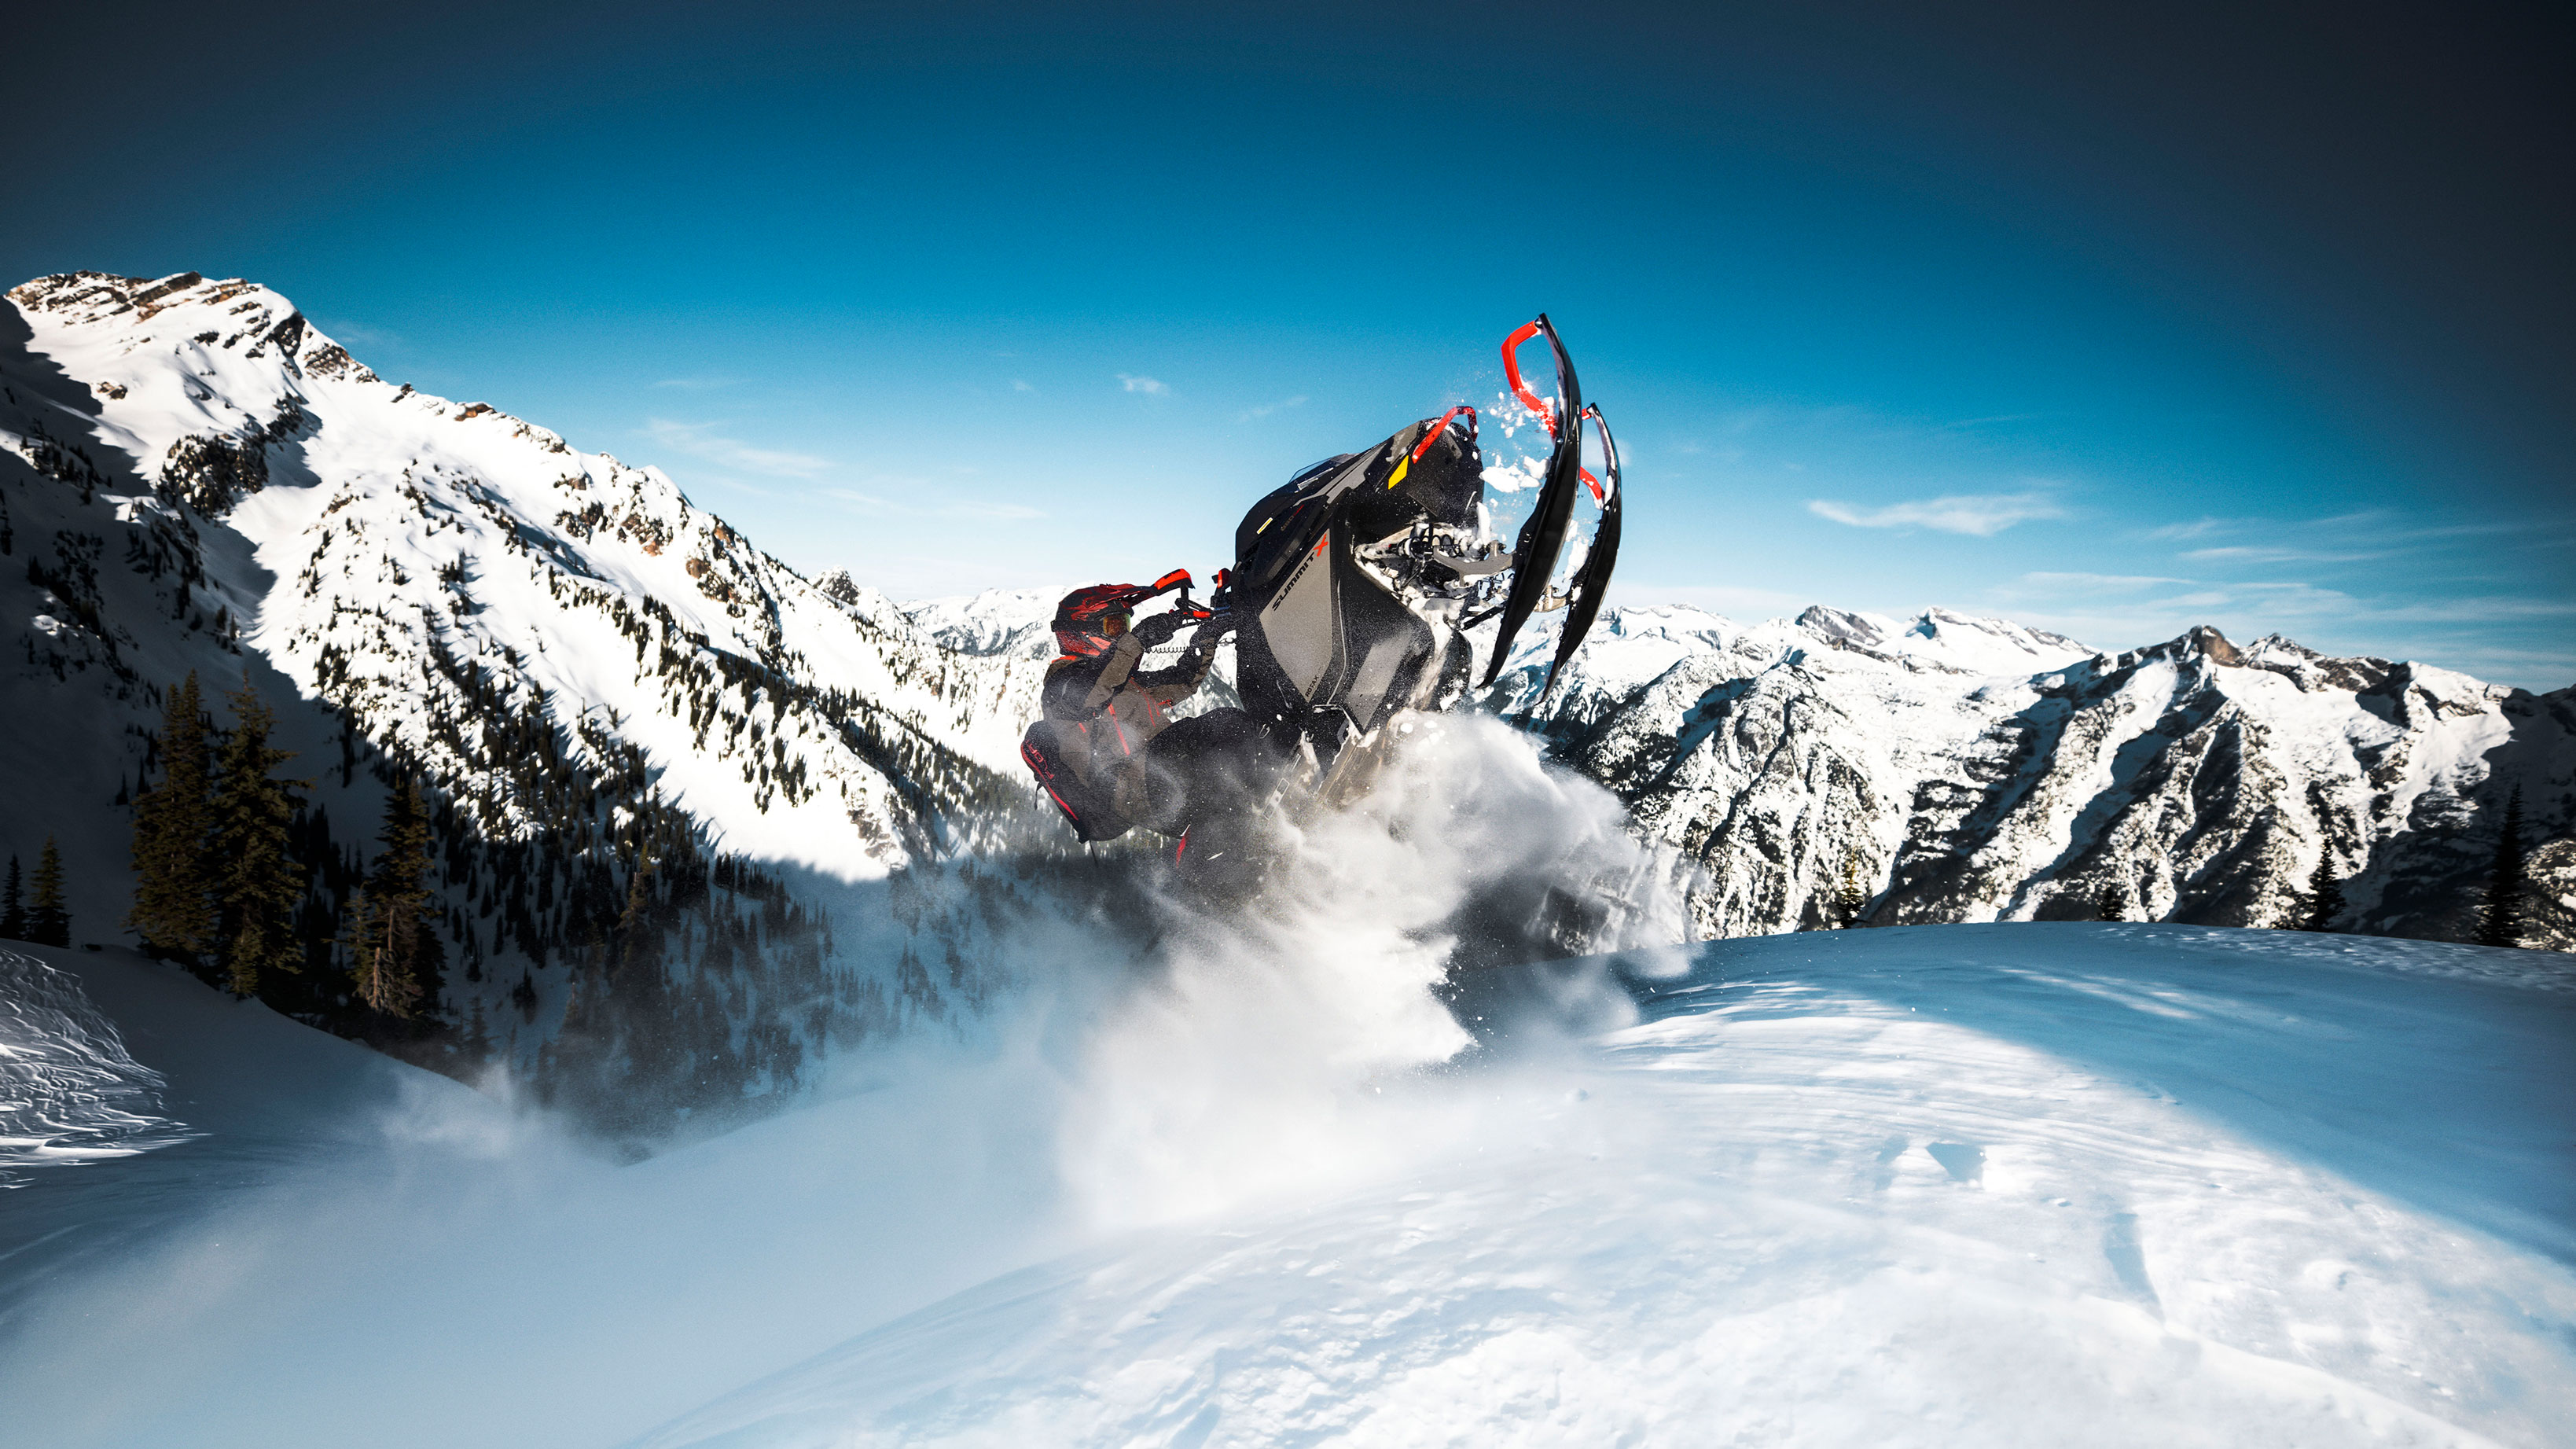 Ski-Doo Summit jumping in Deep-Snow